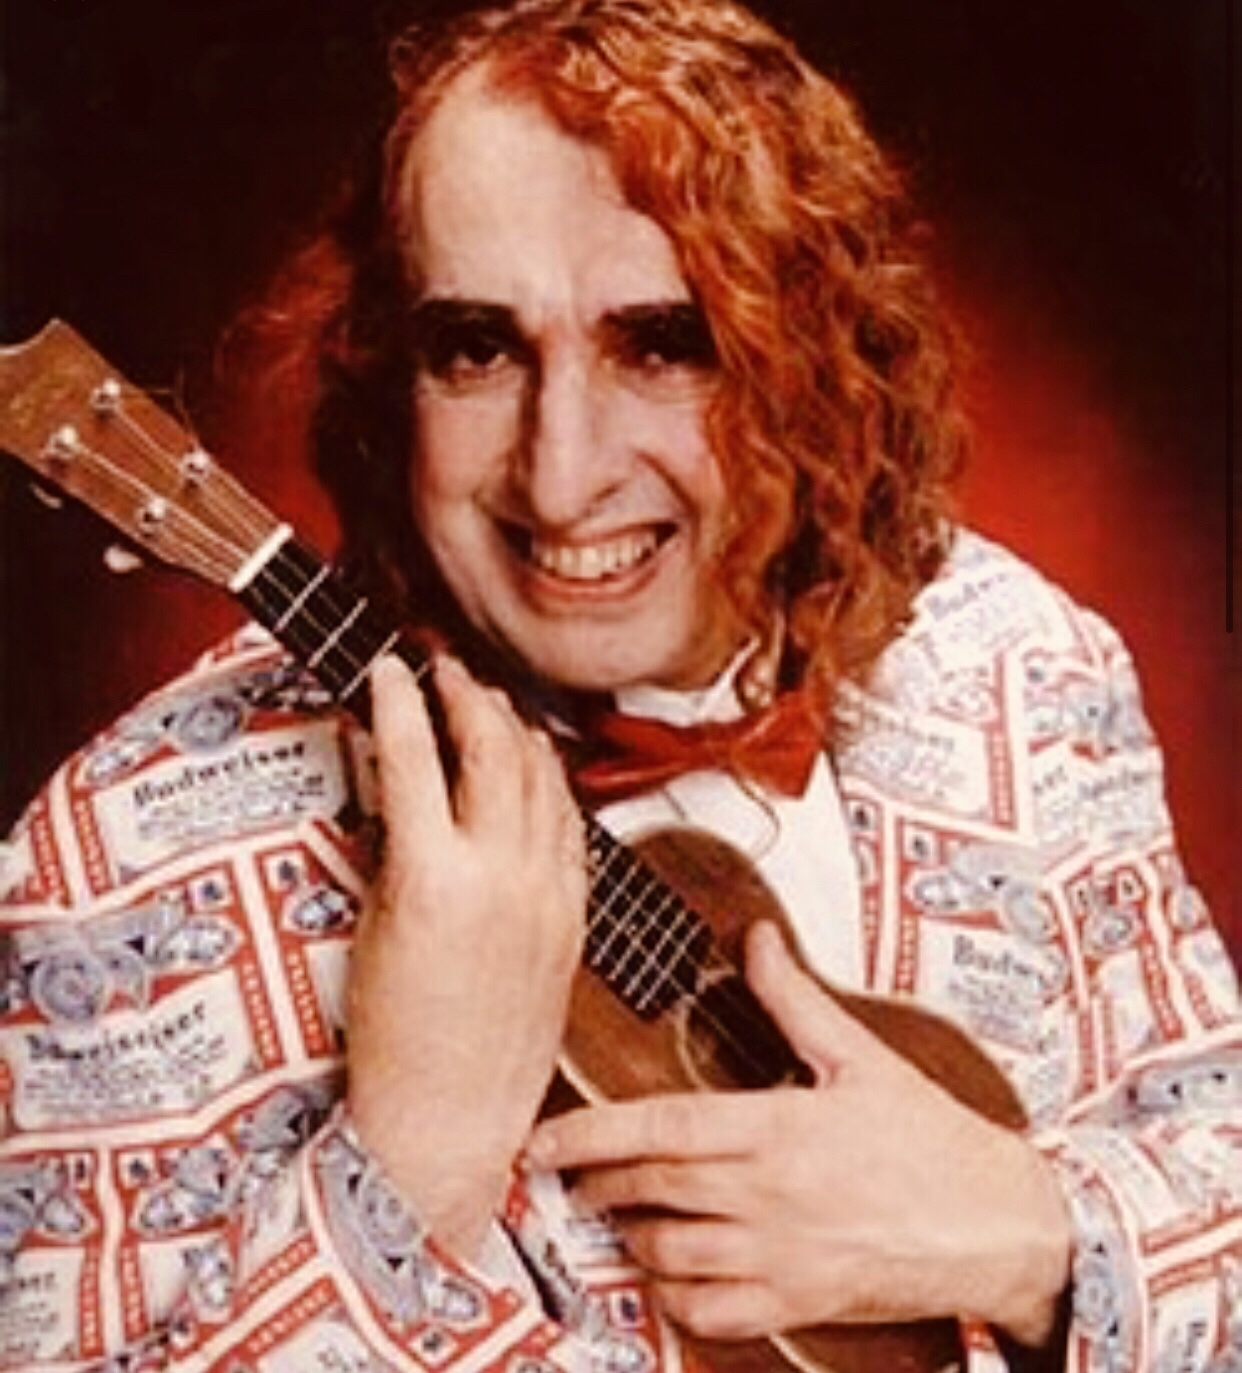 When Tiny Tim came to Freeport on Honeymoon his Bride Wasn't Old Enough to Drink 1969